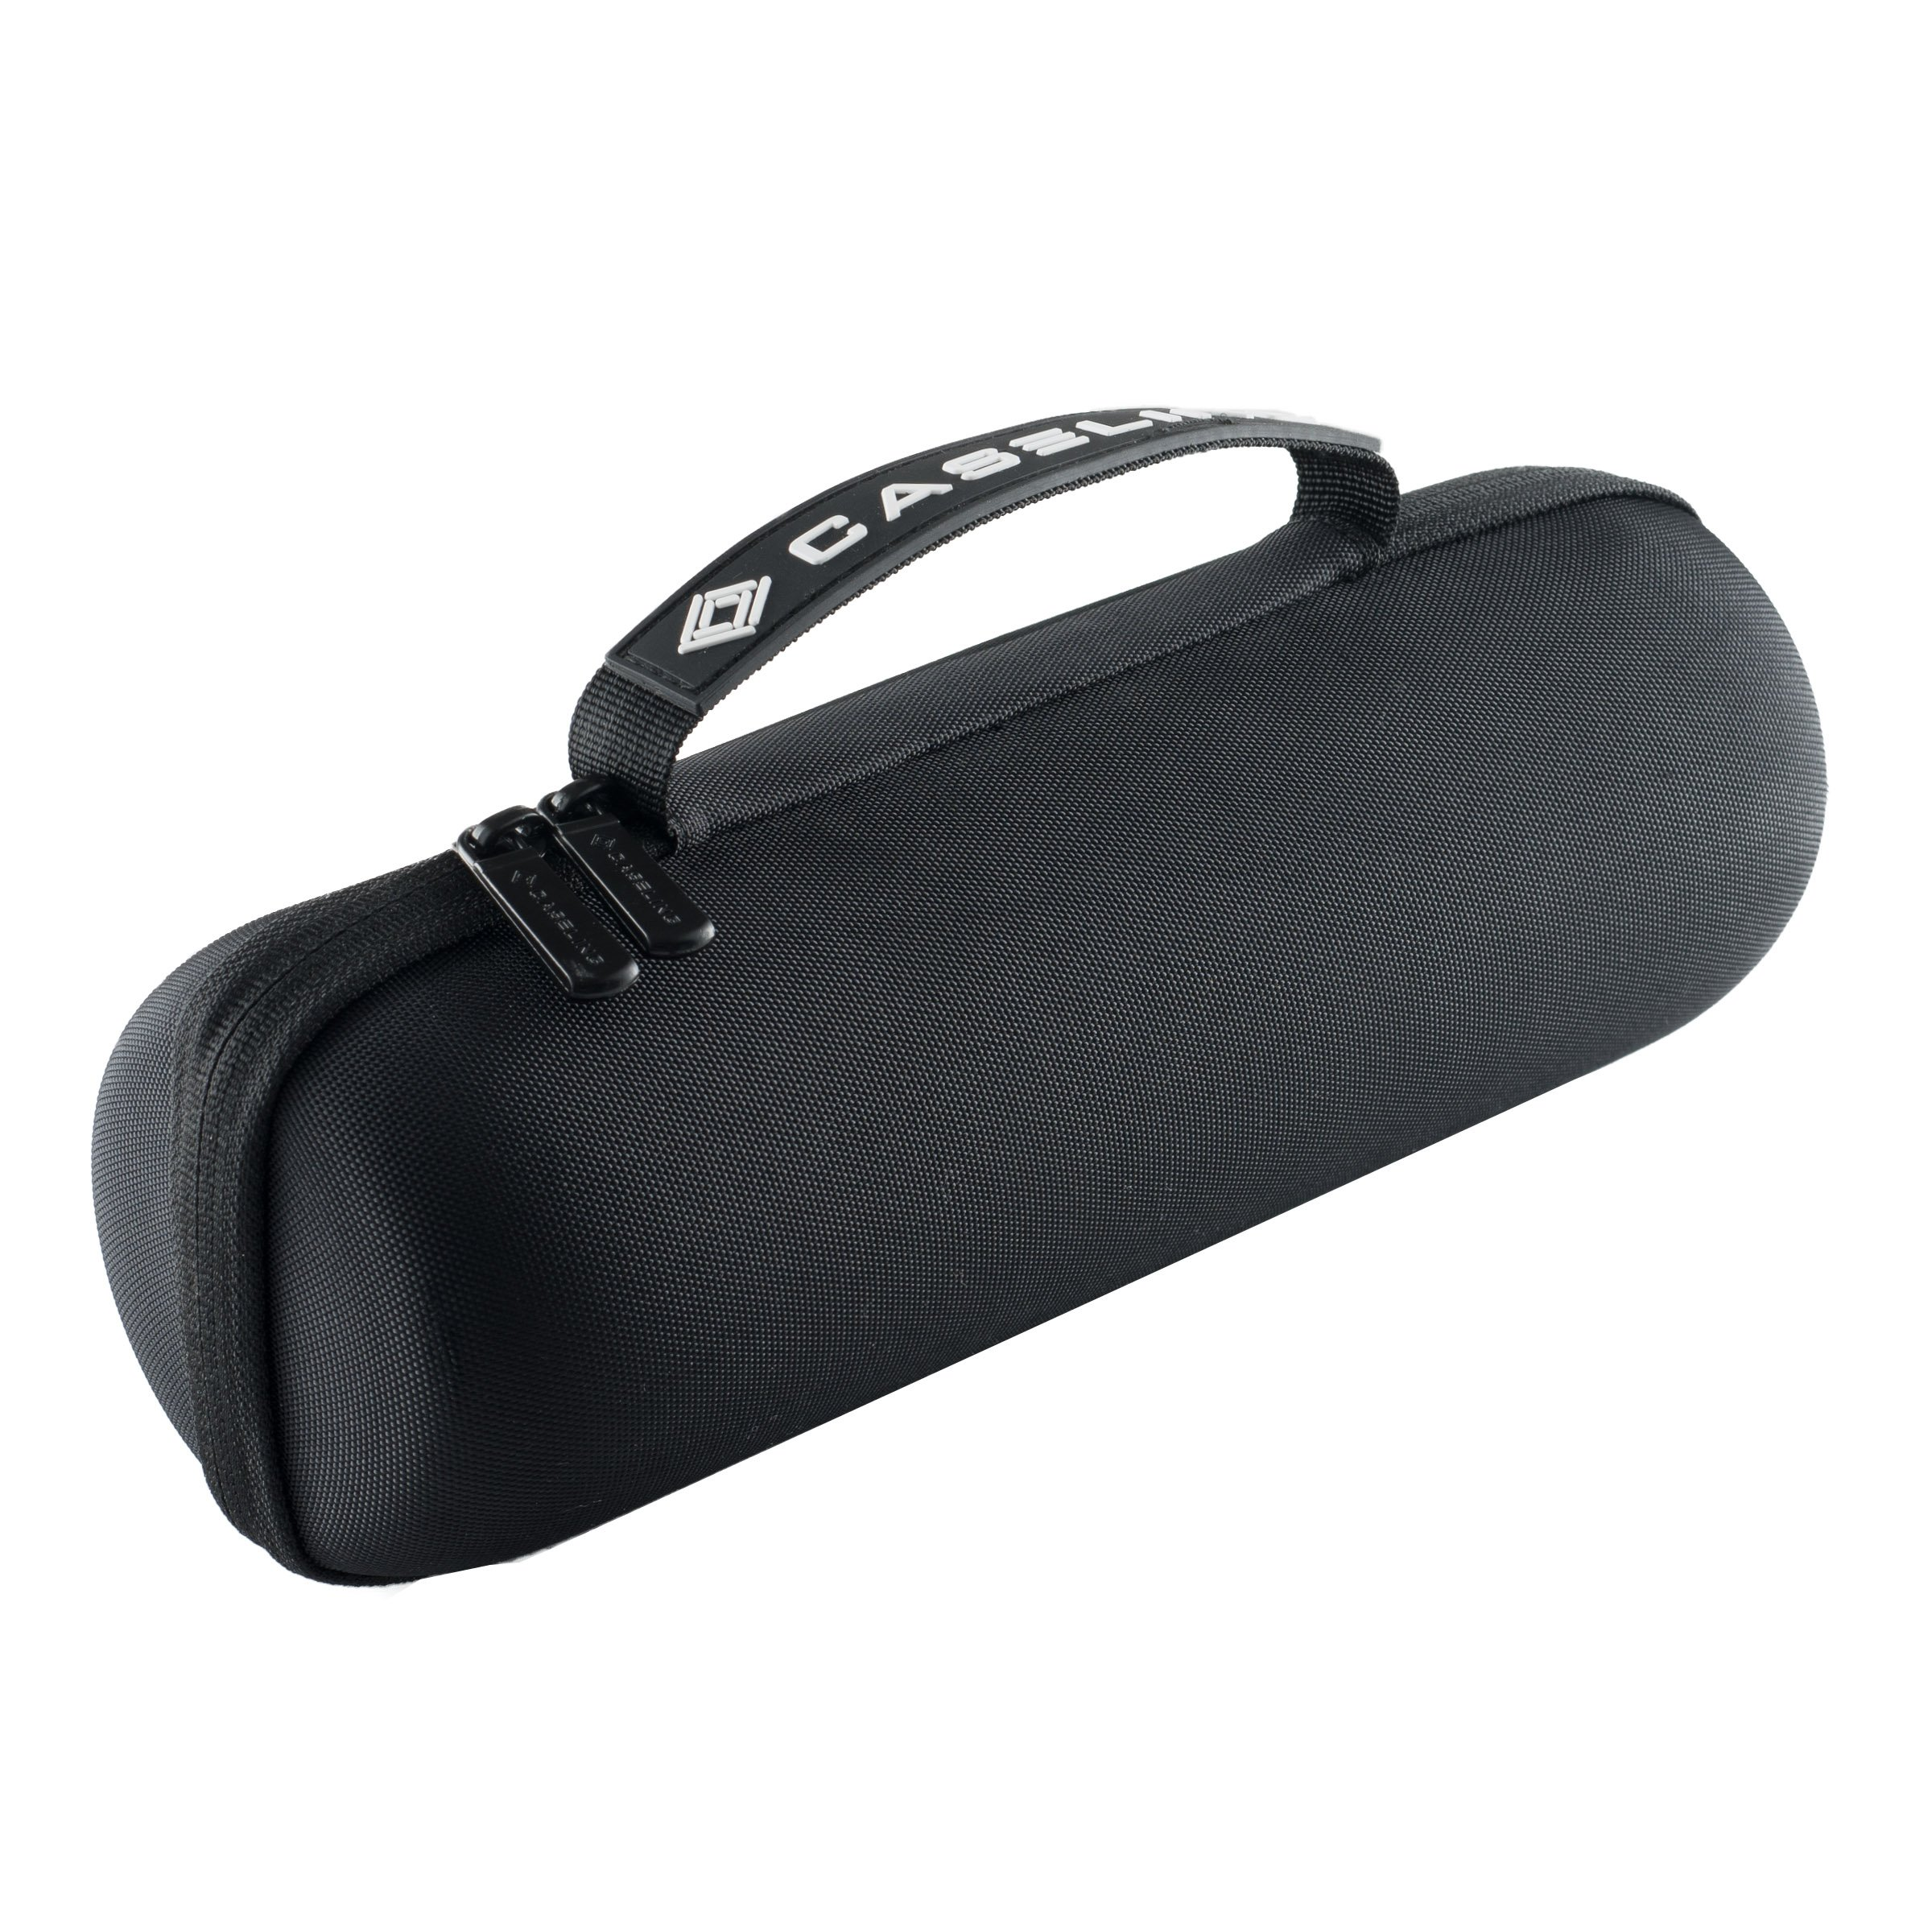 Hard CASE for UE BOOM 2 Wireless Mobile Bluetooth Speaker. Fits USB Cable and Wall Charger. By Caseling